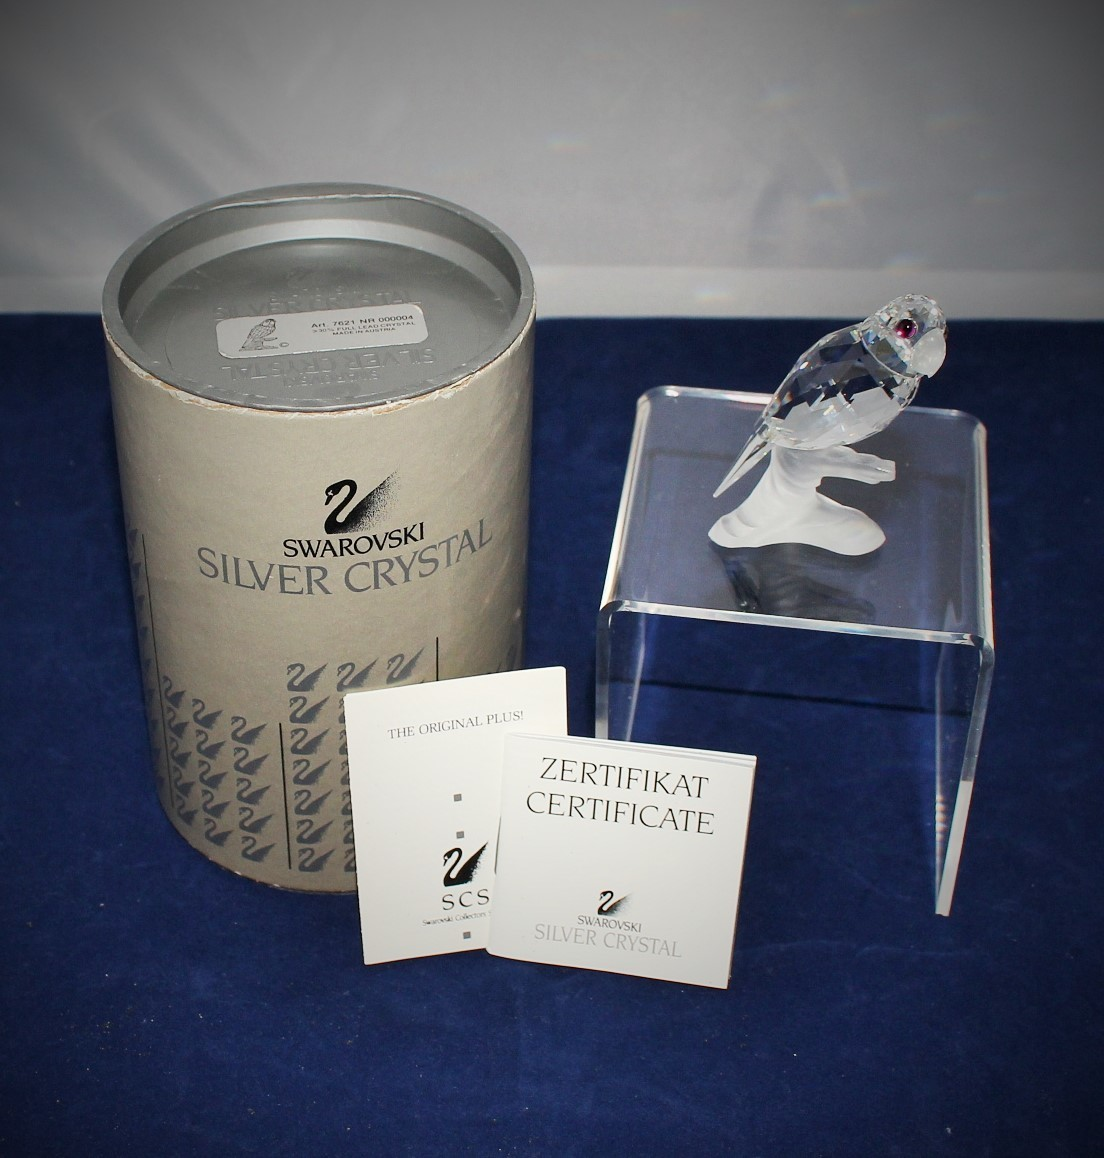 Swarovski Crystal Parrot on Branch Figurine 7621000004 w/ Certificate & Box